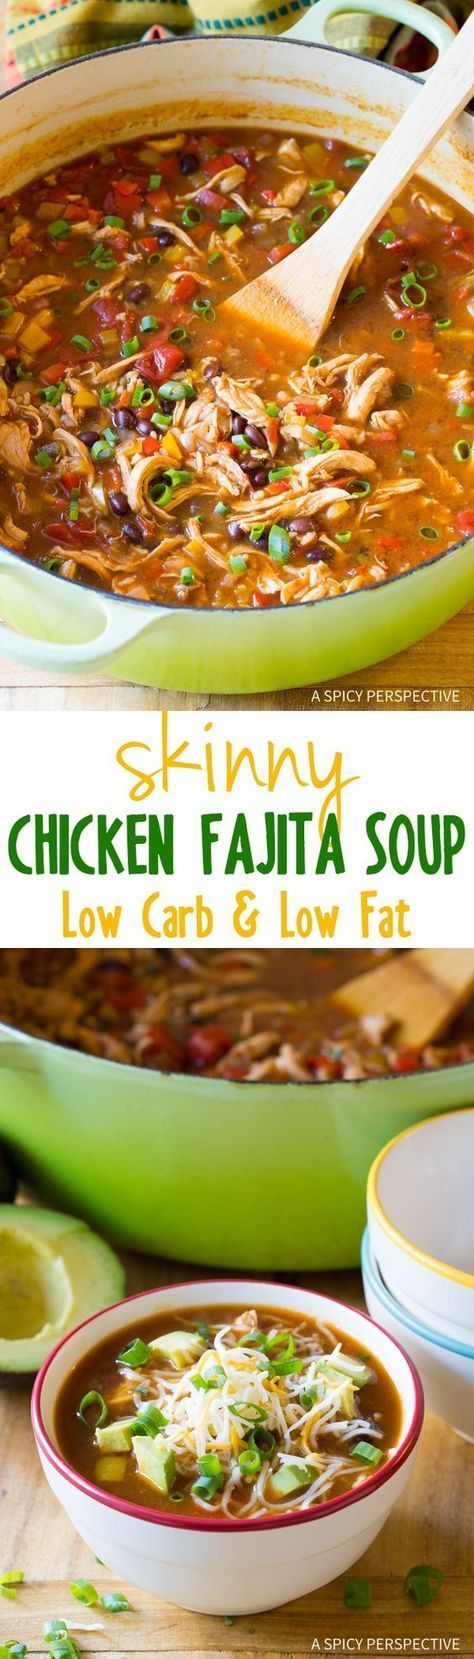 Skinny Chicken Fajita Soup (Video) – A Spicy Perspective Amazing Skinny Chicken Fajita Soup Recipe – Low Fat, Gluten Free, & Low Carb Option! via Sommer Crock Pot Recipes, Cooker Recipes, Keto Recipes, Carb Free Recipes, Carb Free Meals, Skinny Recipes, Lunch Recipes, Cheap Recipes, Low Carb Low Salt Recipes